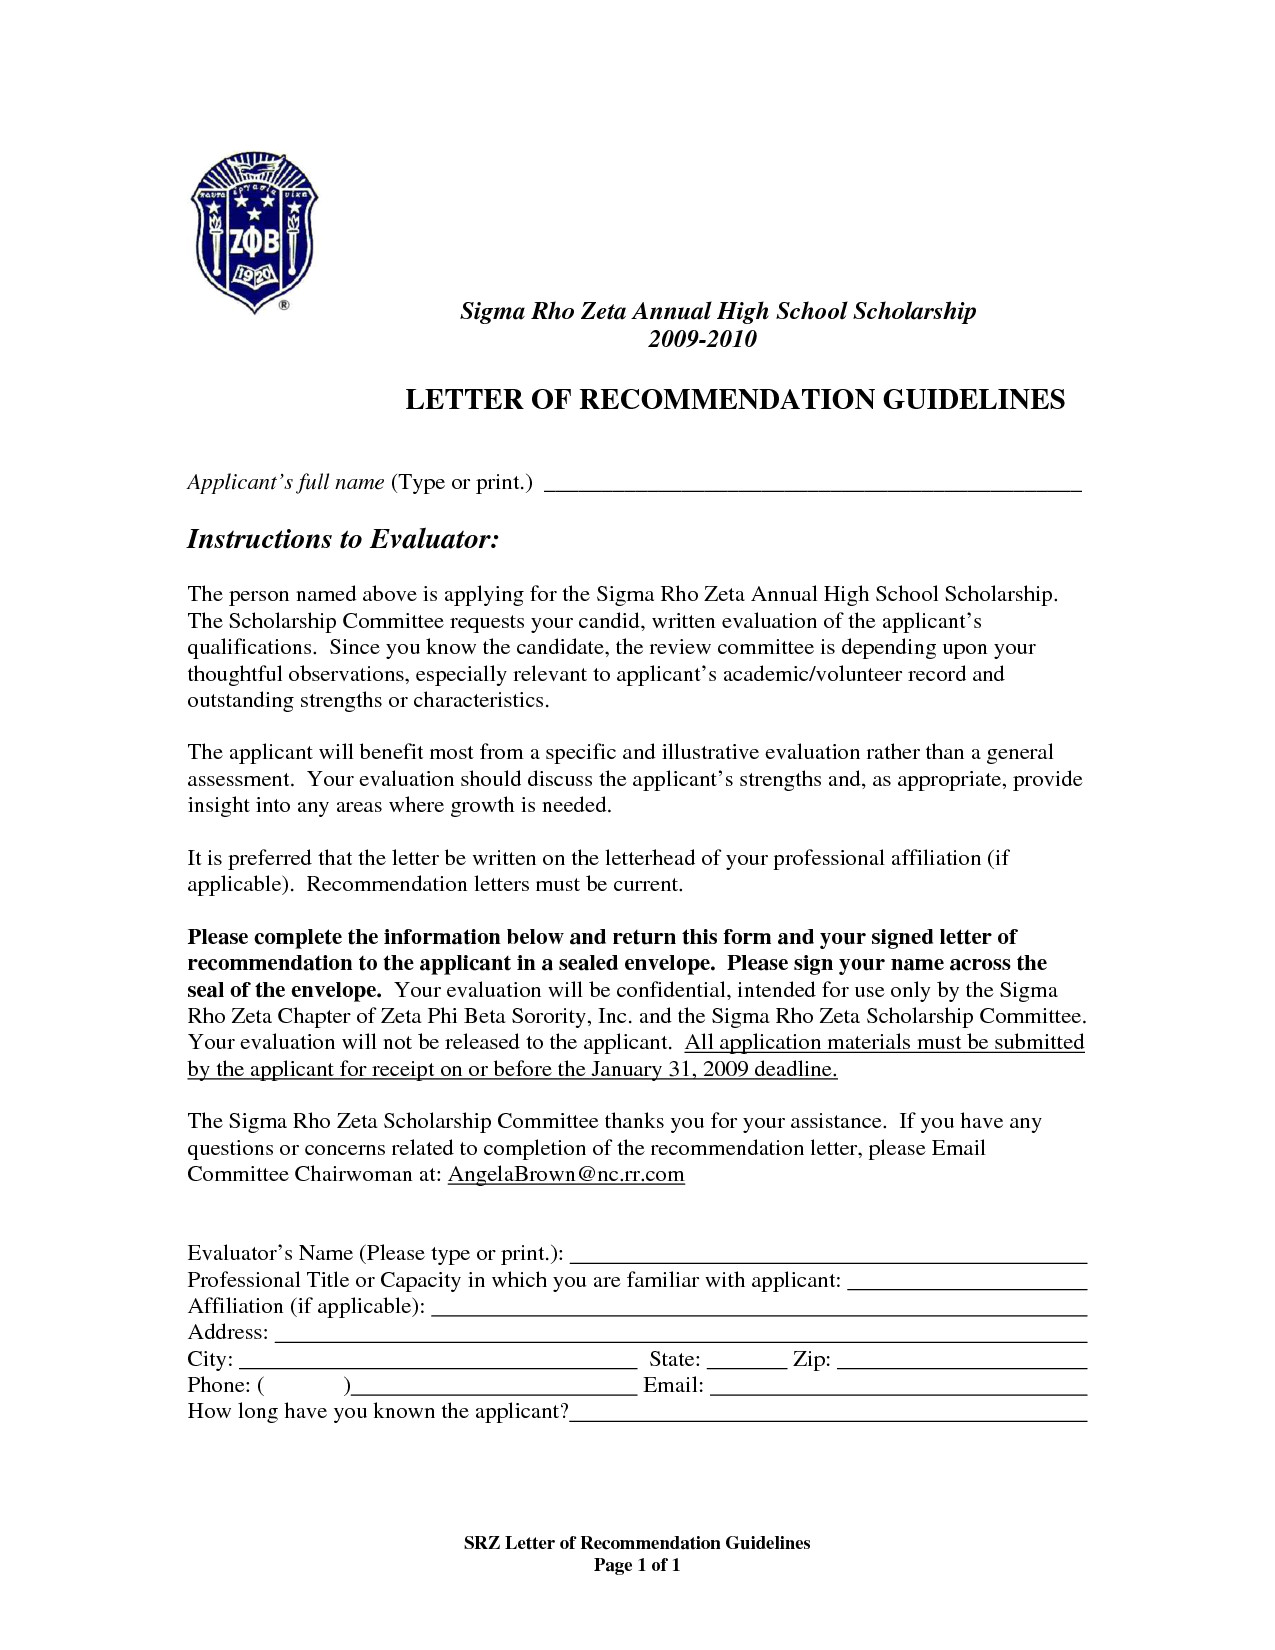 The Best Cover Letter Ever Written Letter Guideline Cover Letter Samples Cover Letter Samples